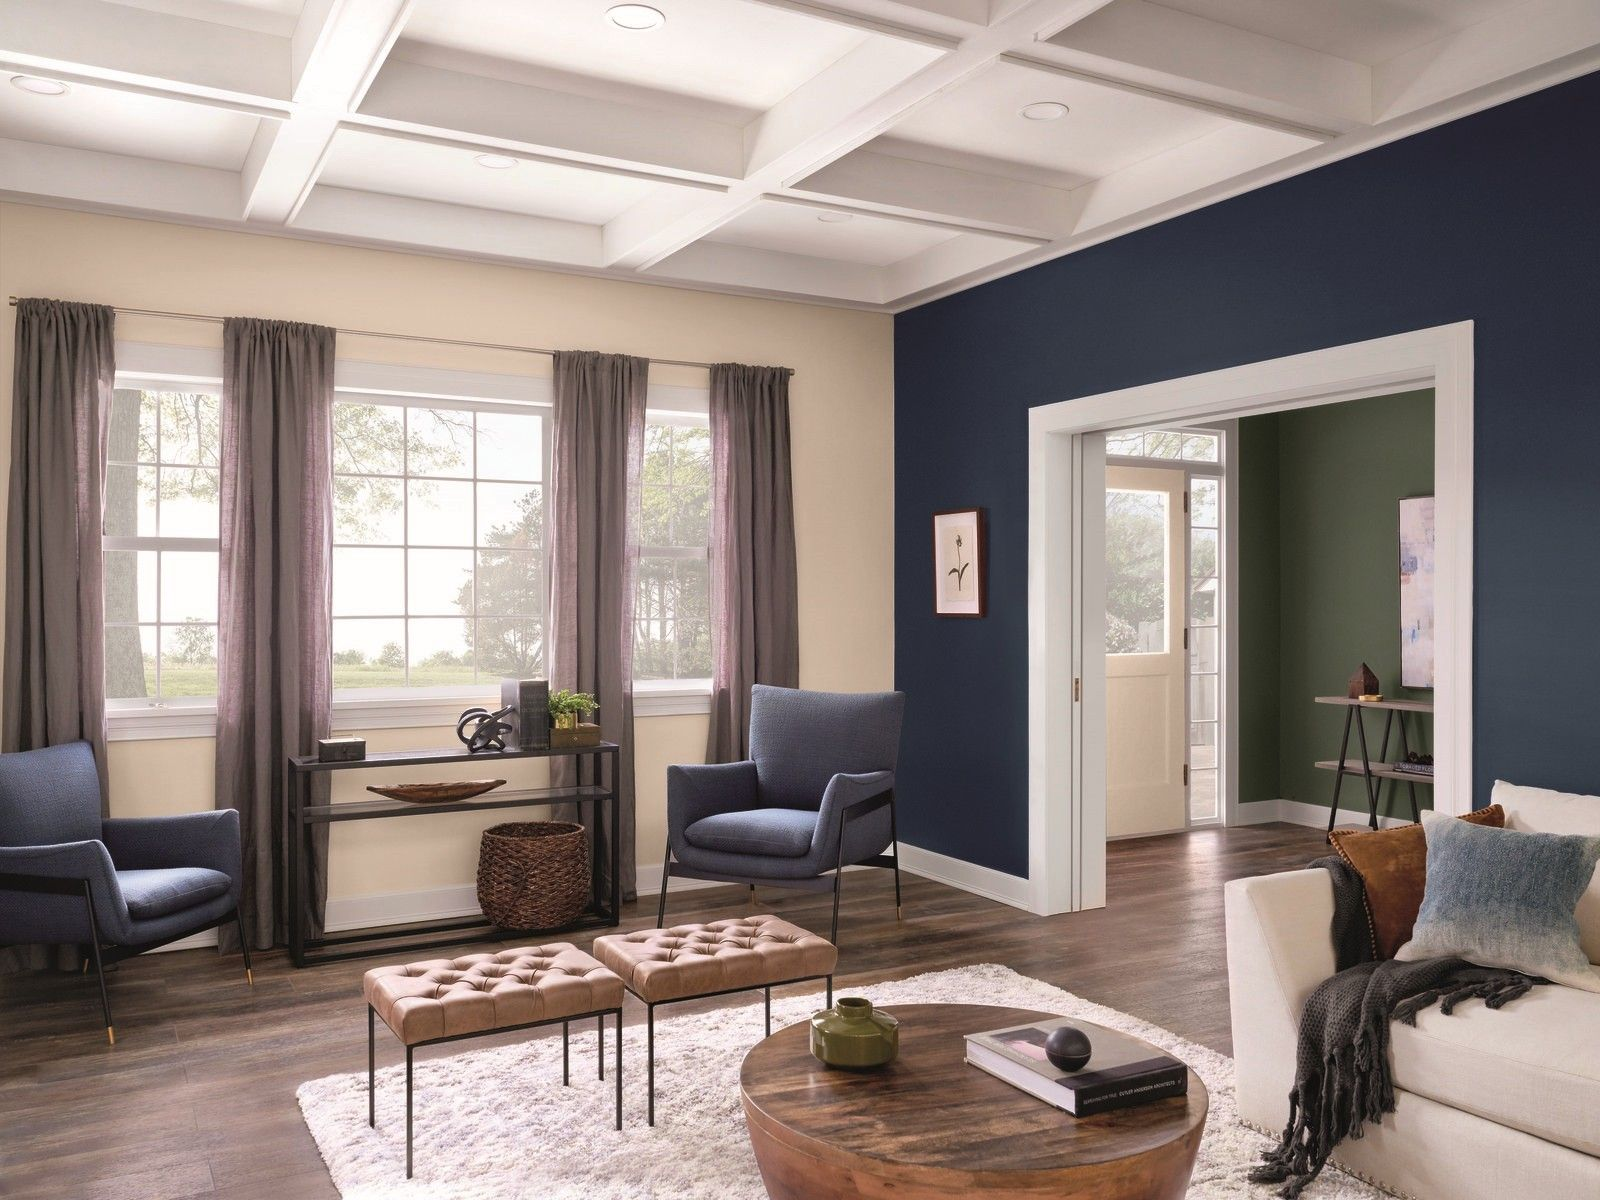 Paint Color Trends 2020 With Blue Couch 2020 Blue Color In 2020